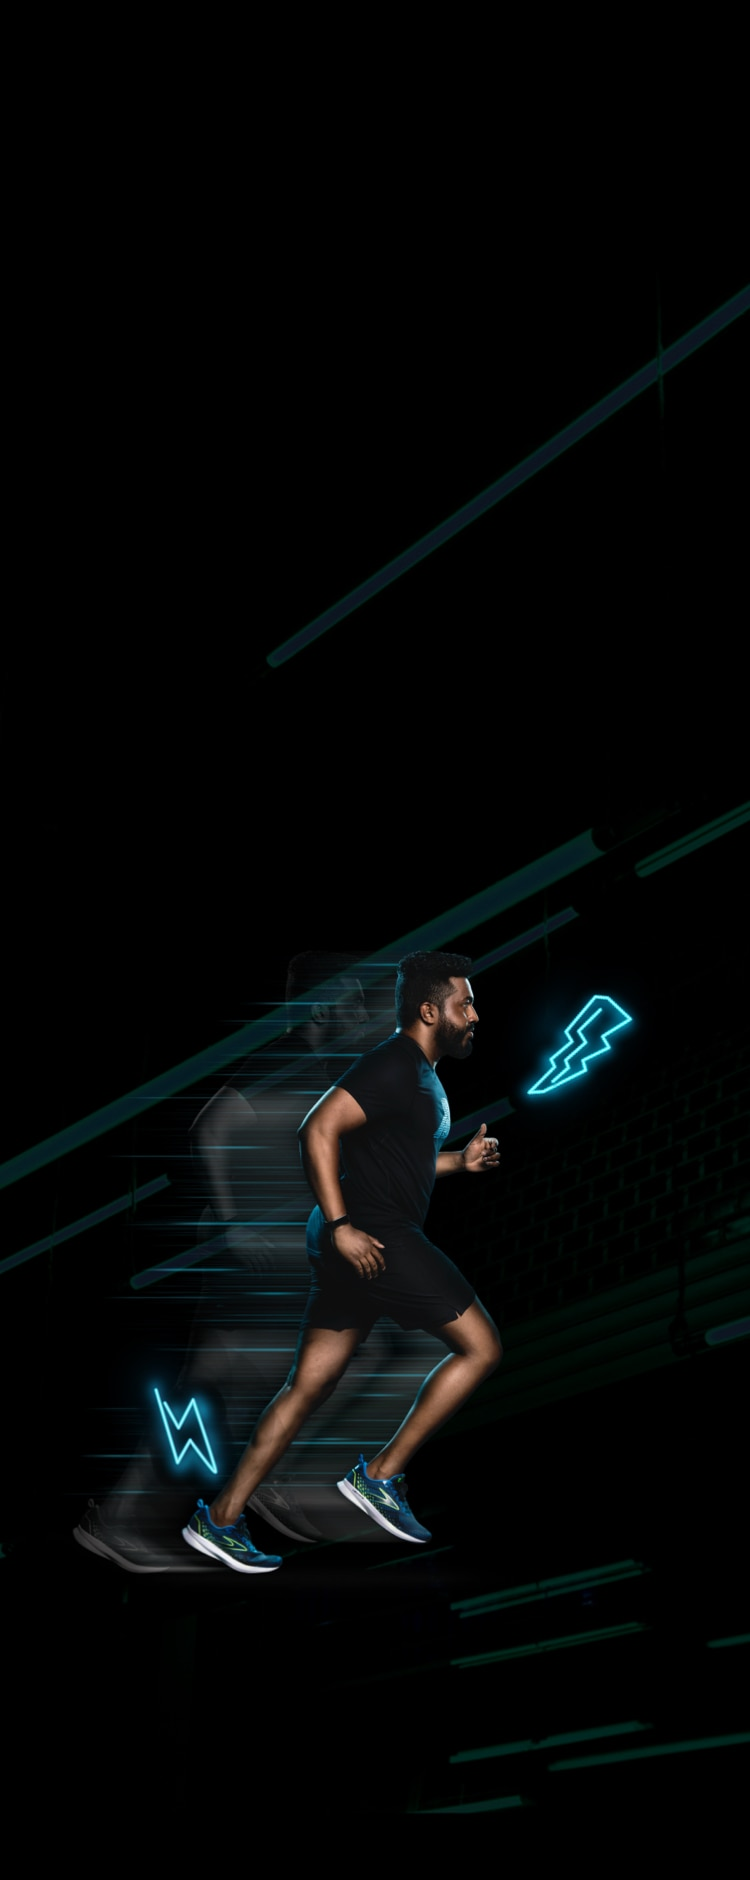 A runner in front of a black background